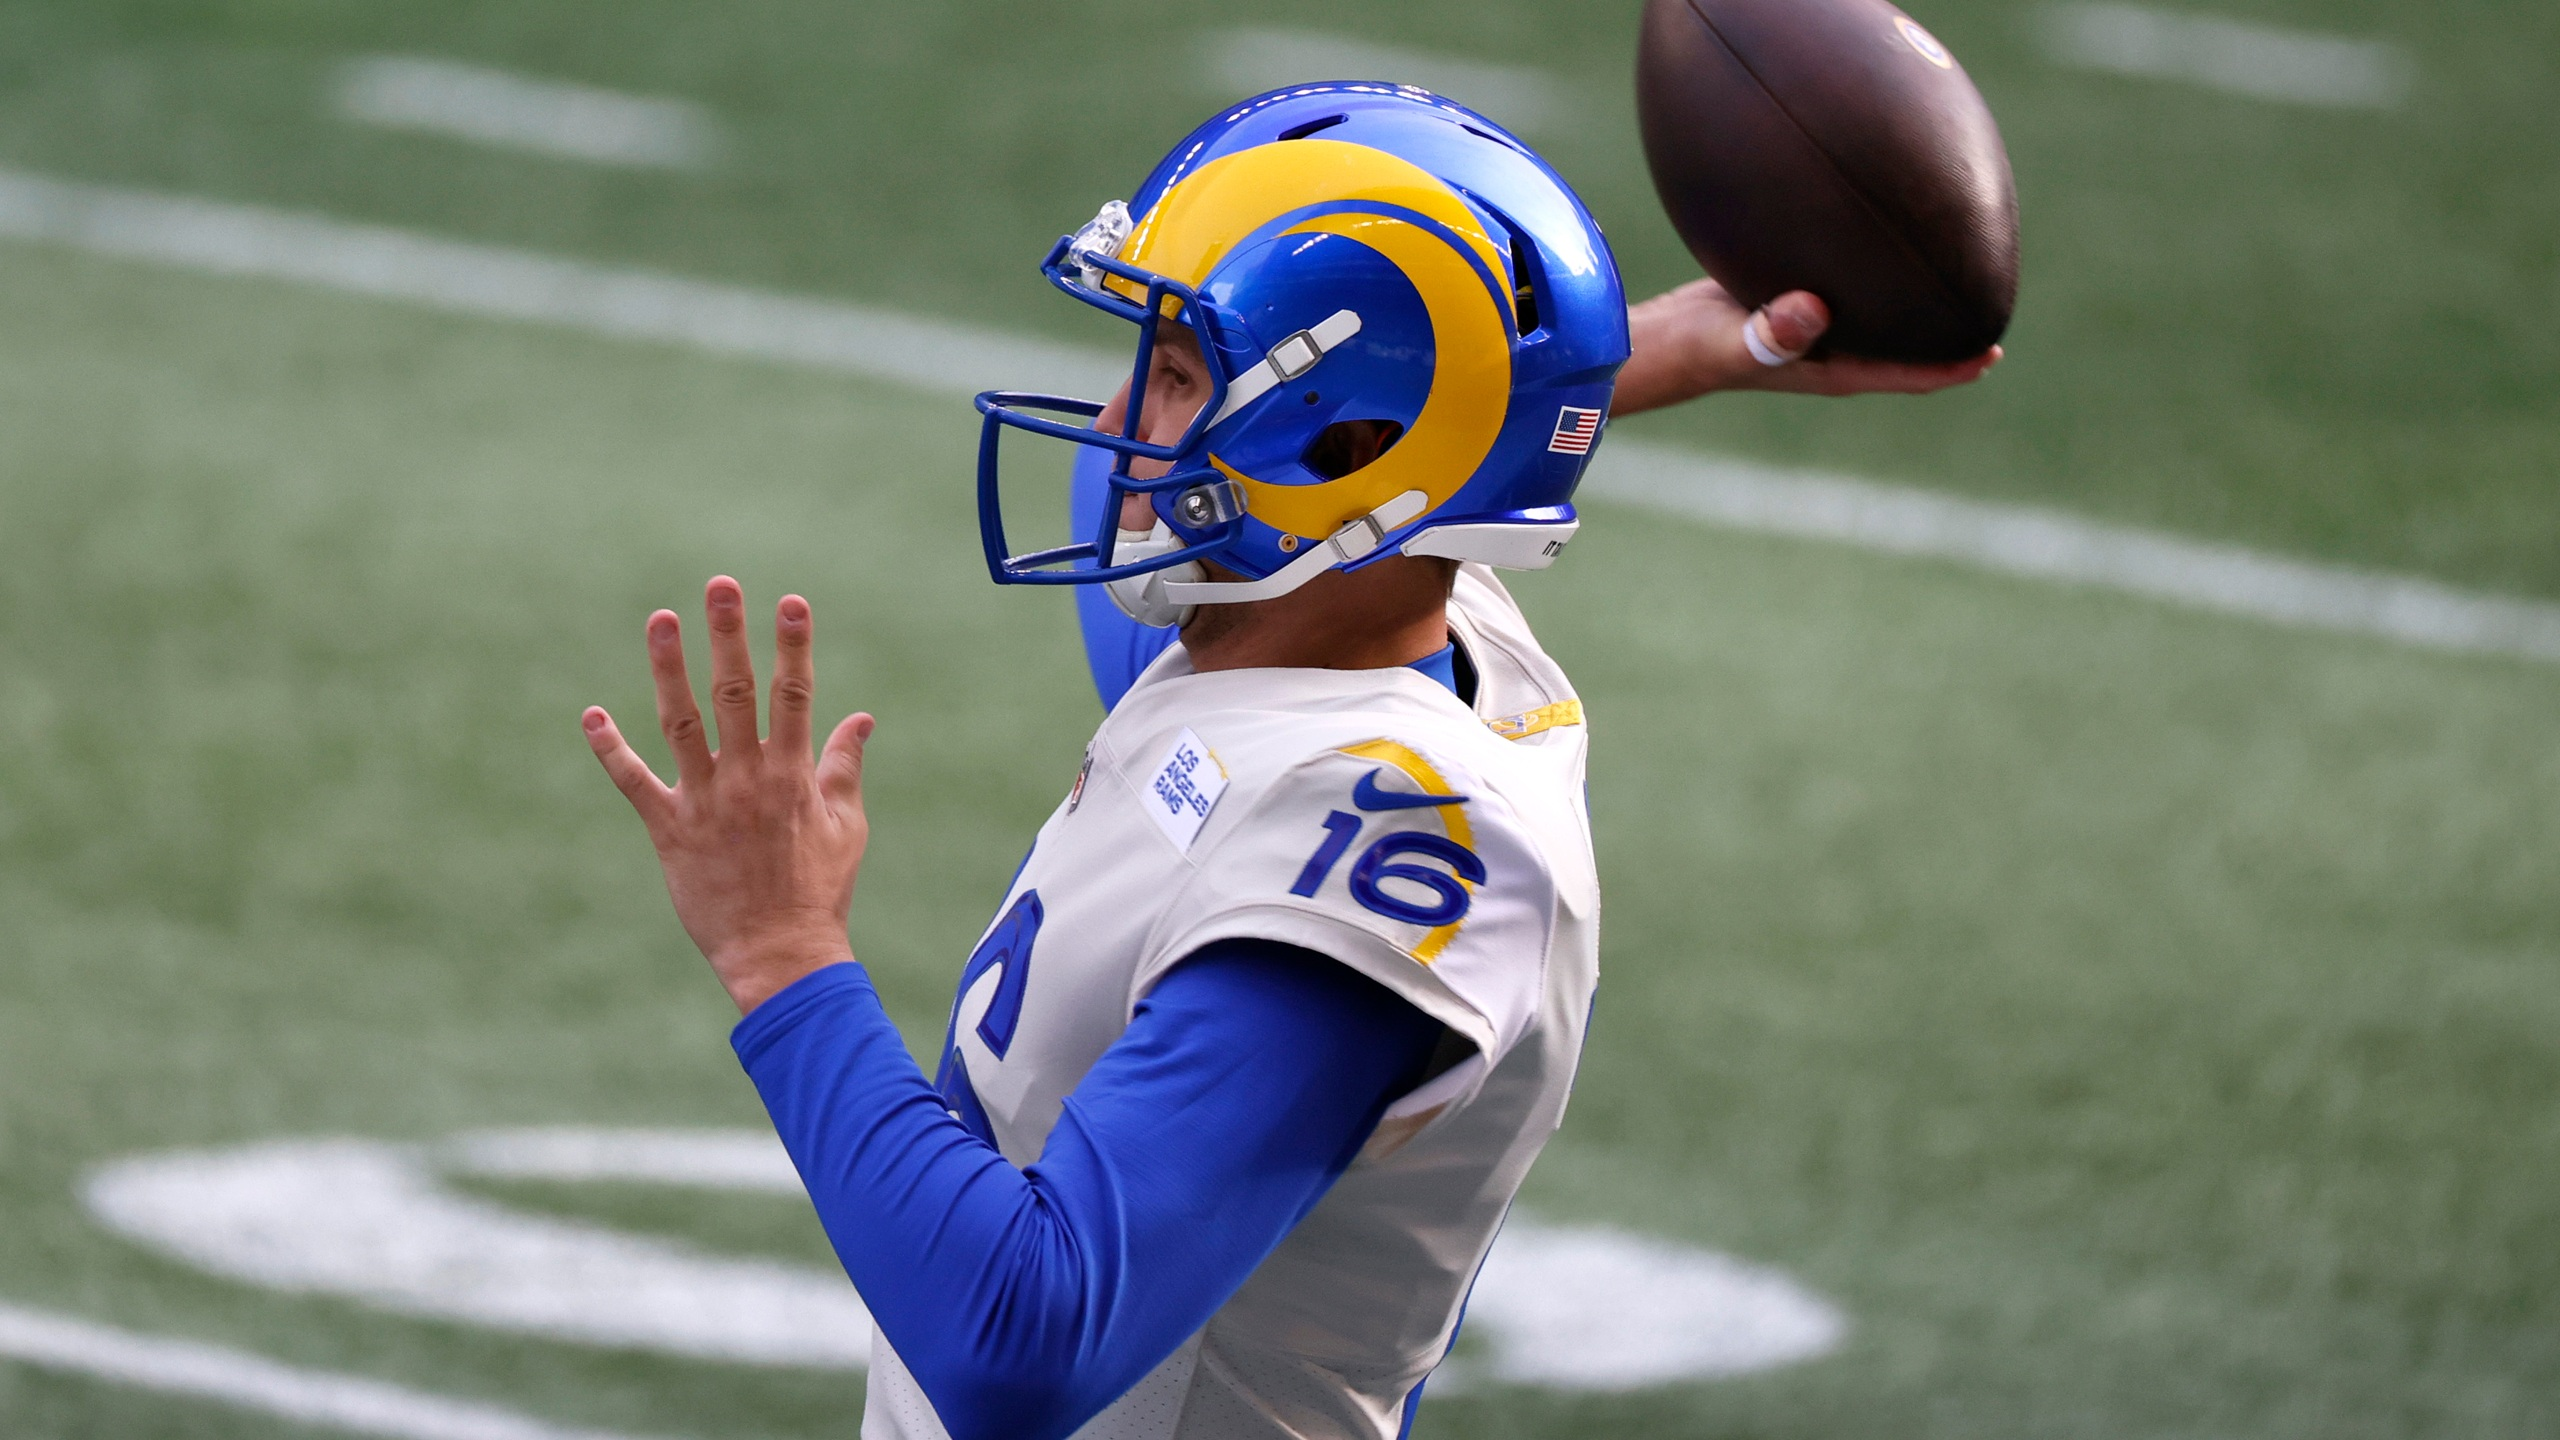 Quarterback Jared Goff, No. 16 of the Los Angeles Rams, warms up prior to the NFC Wild Card Playoff game against the Seattle Seahawks at Lumen Field on Jan. 9, 2021 in Seattle, Washington. (Steph Chambers/Getty Images)